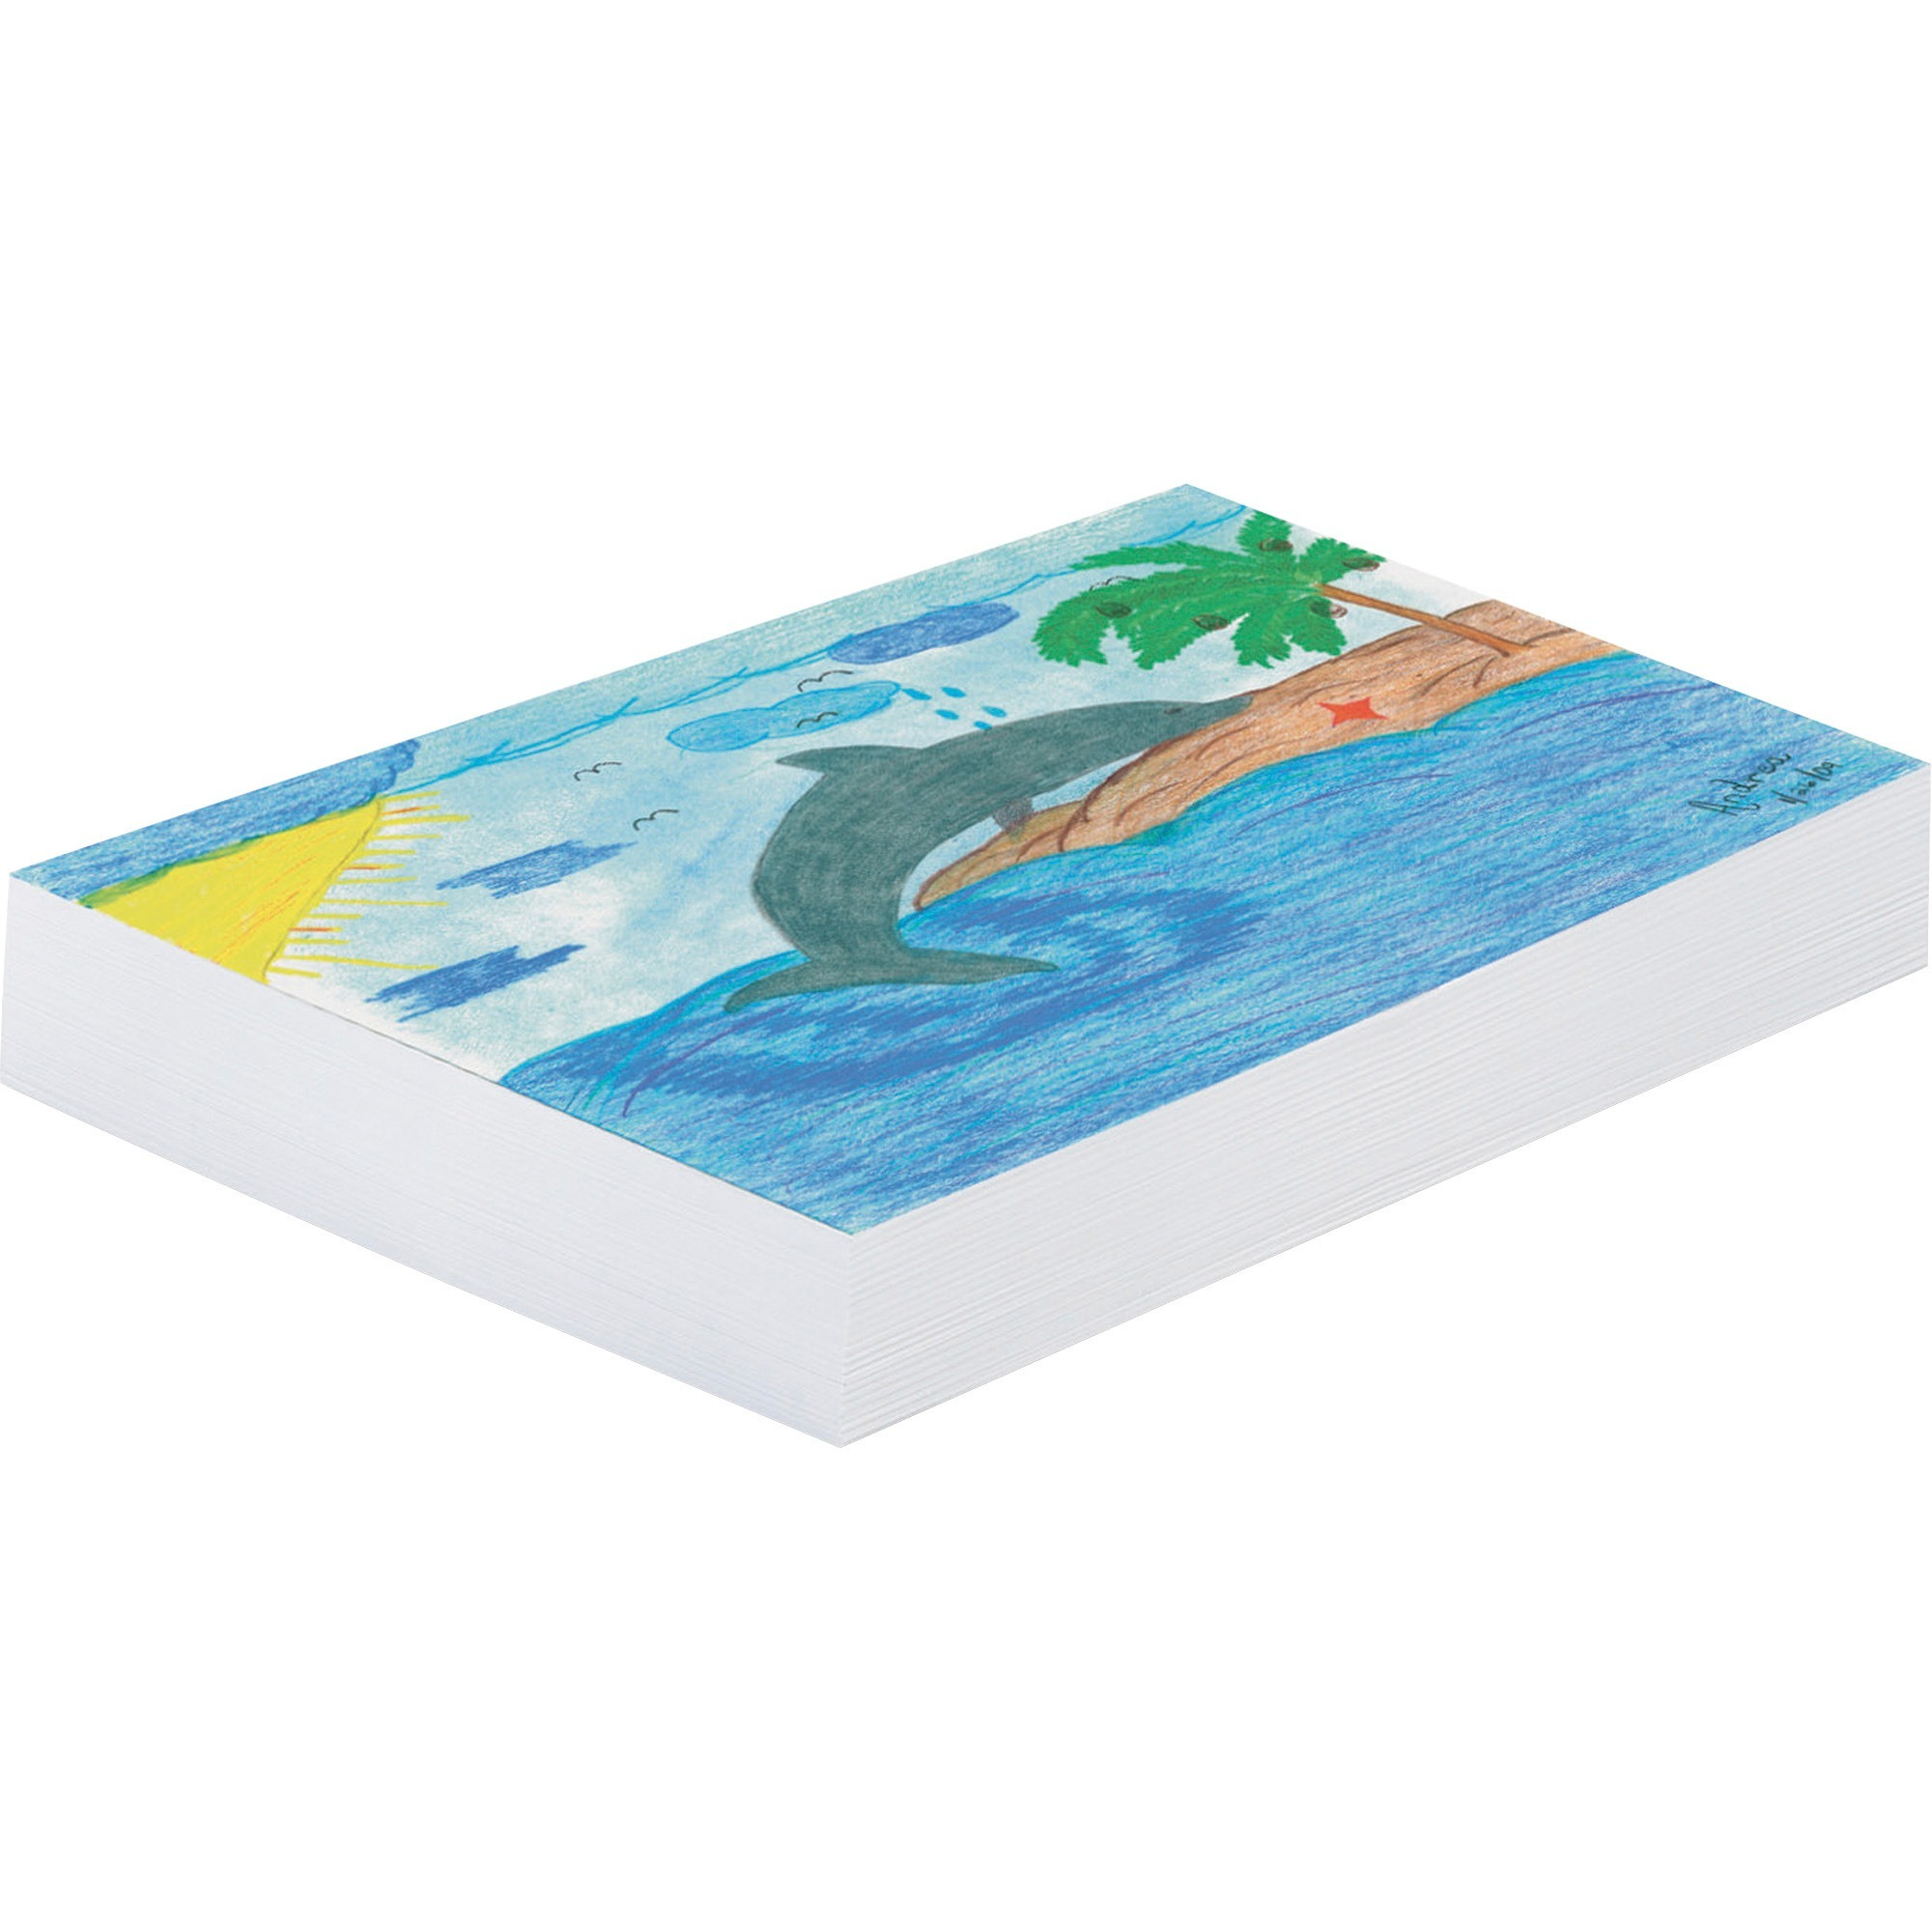 White 11 x 16 50 Sheets Pacon PAC73610 Finger Paint Paper